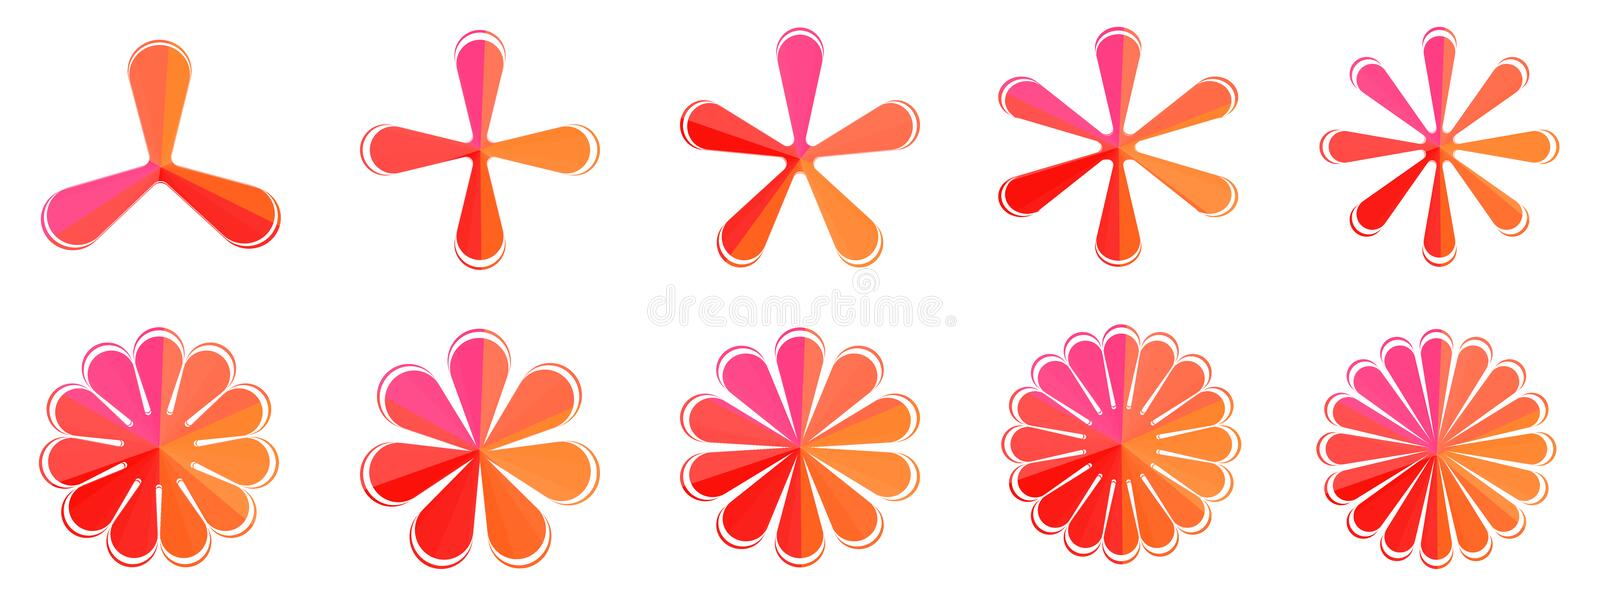 Vector Set of splash flower, star, snowflake, shape isolated icon symbol illustration, abstract background texture pattern art. Vector Set of splash flower, star stock illustration